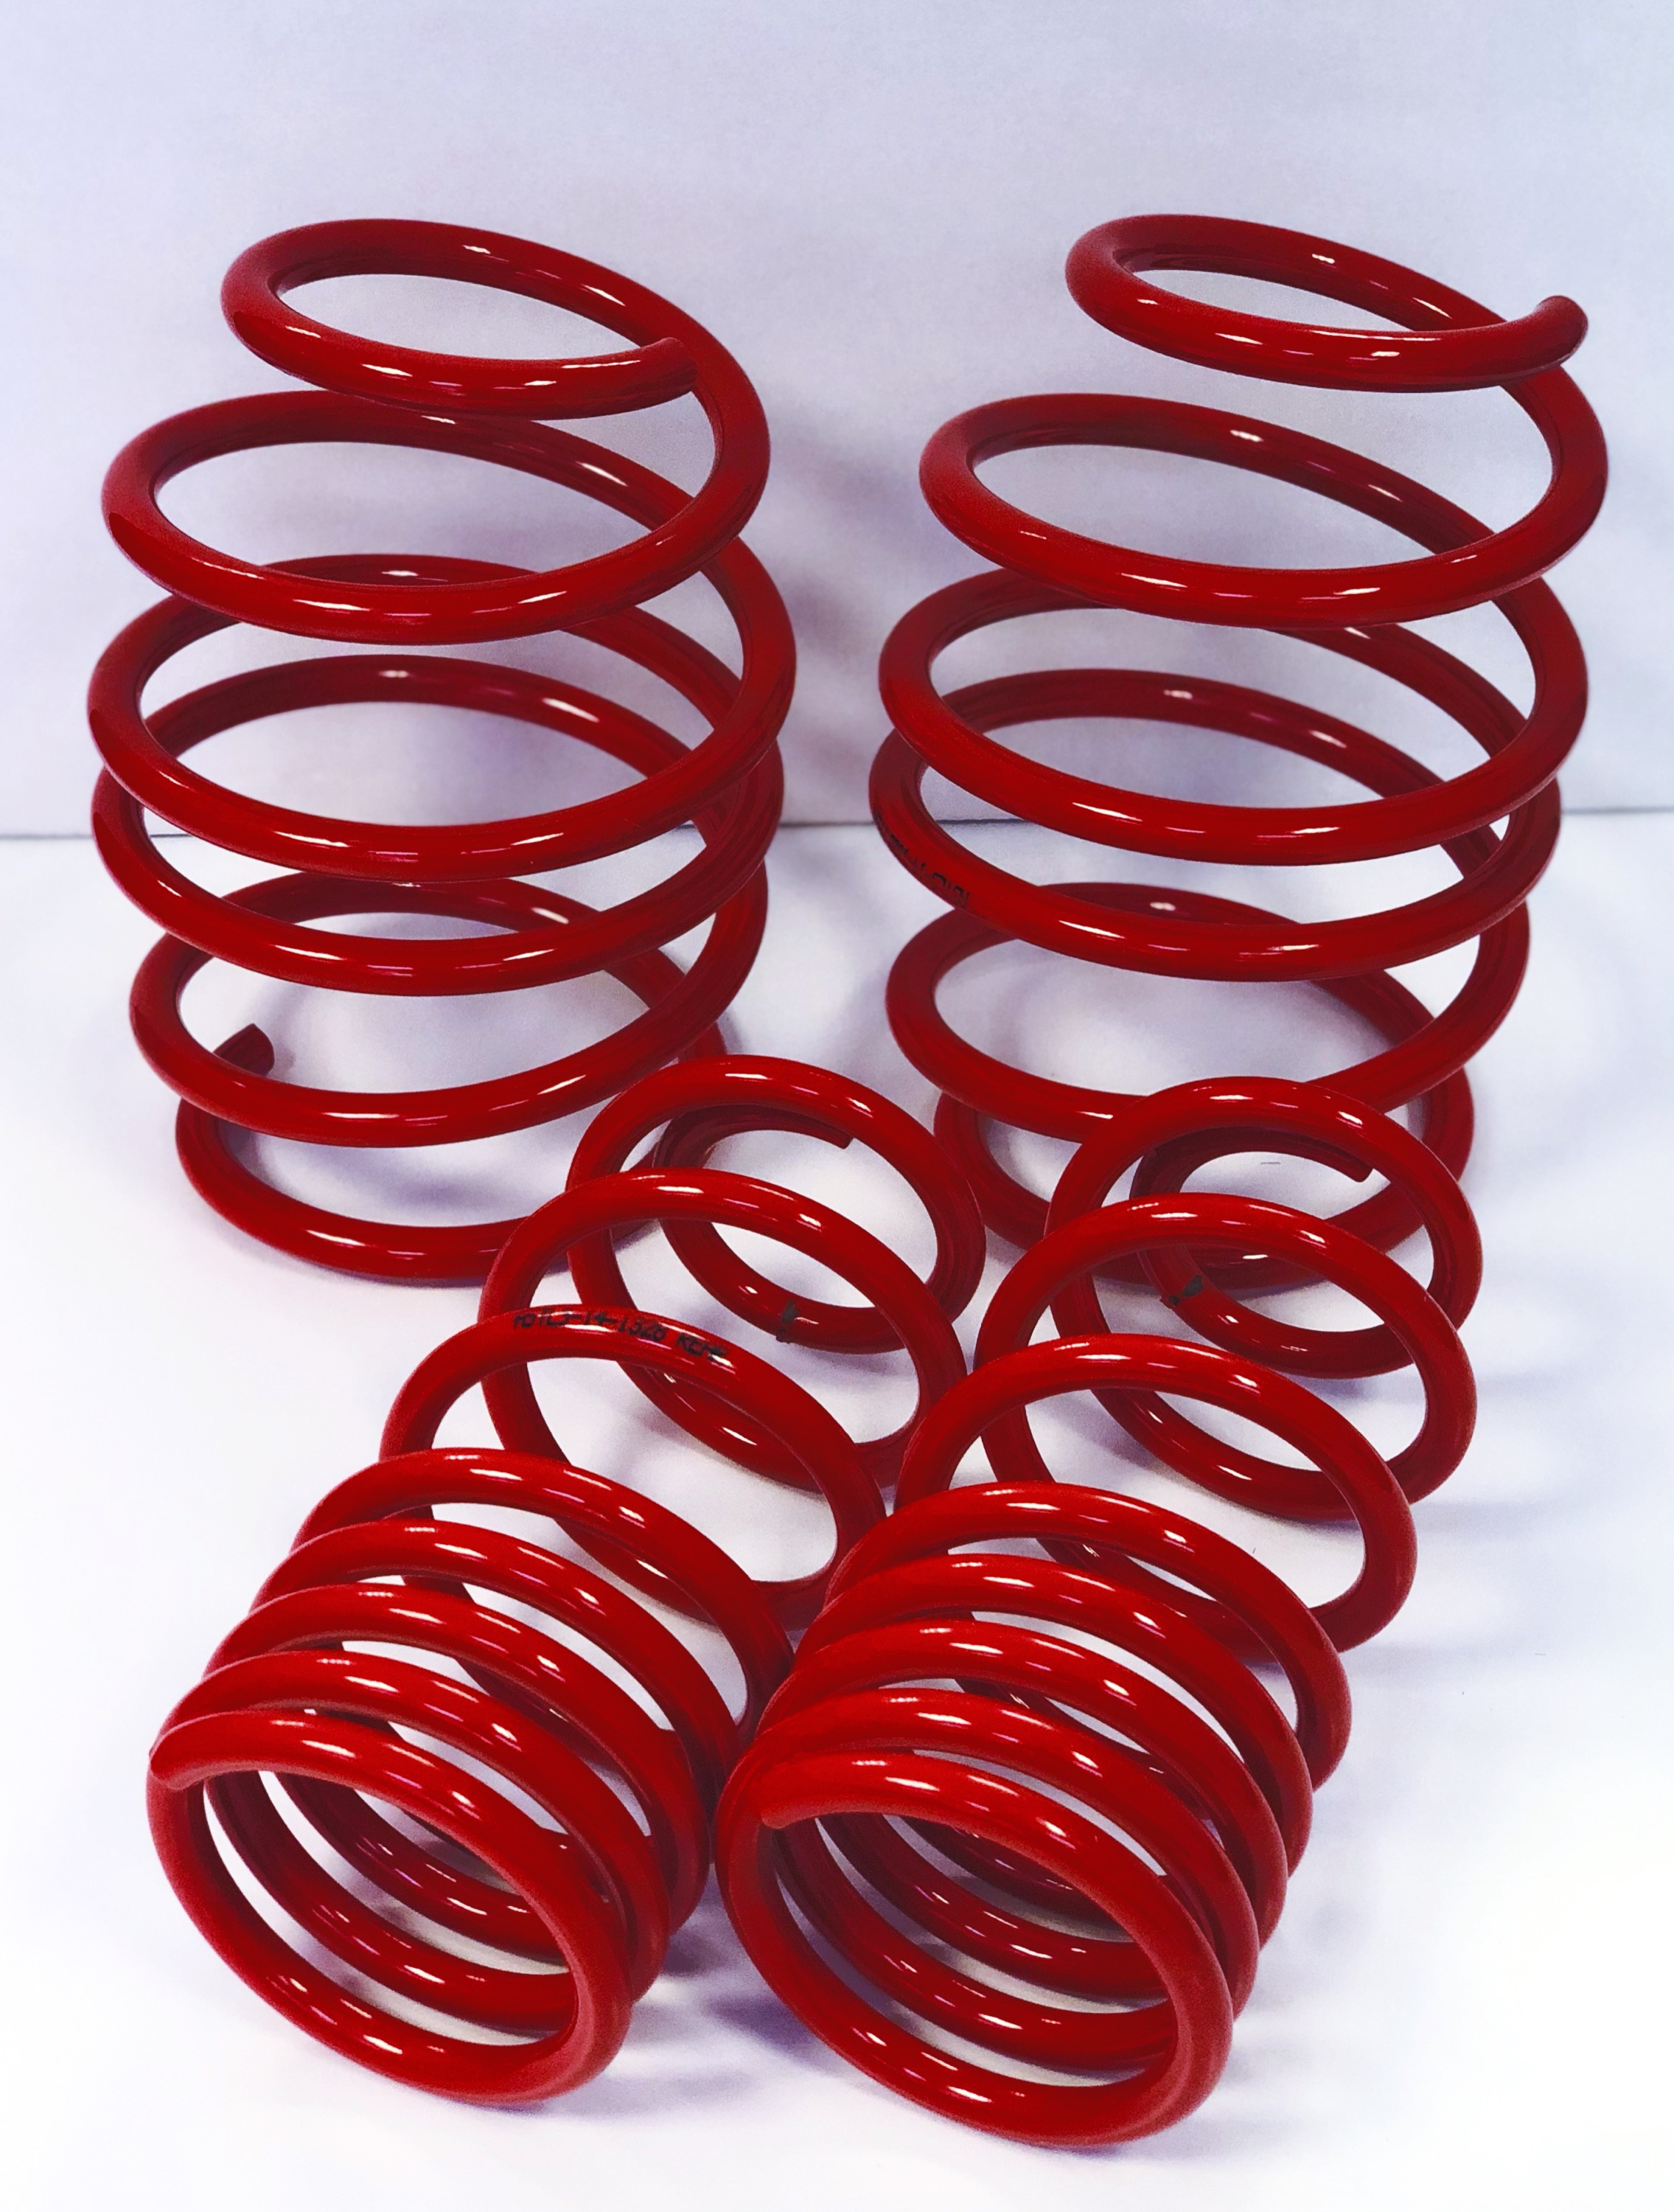 Seat EXEO AST Suspension Lowering Springs 35MM